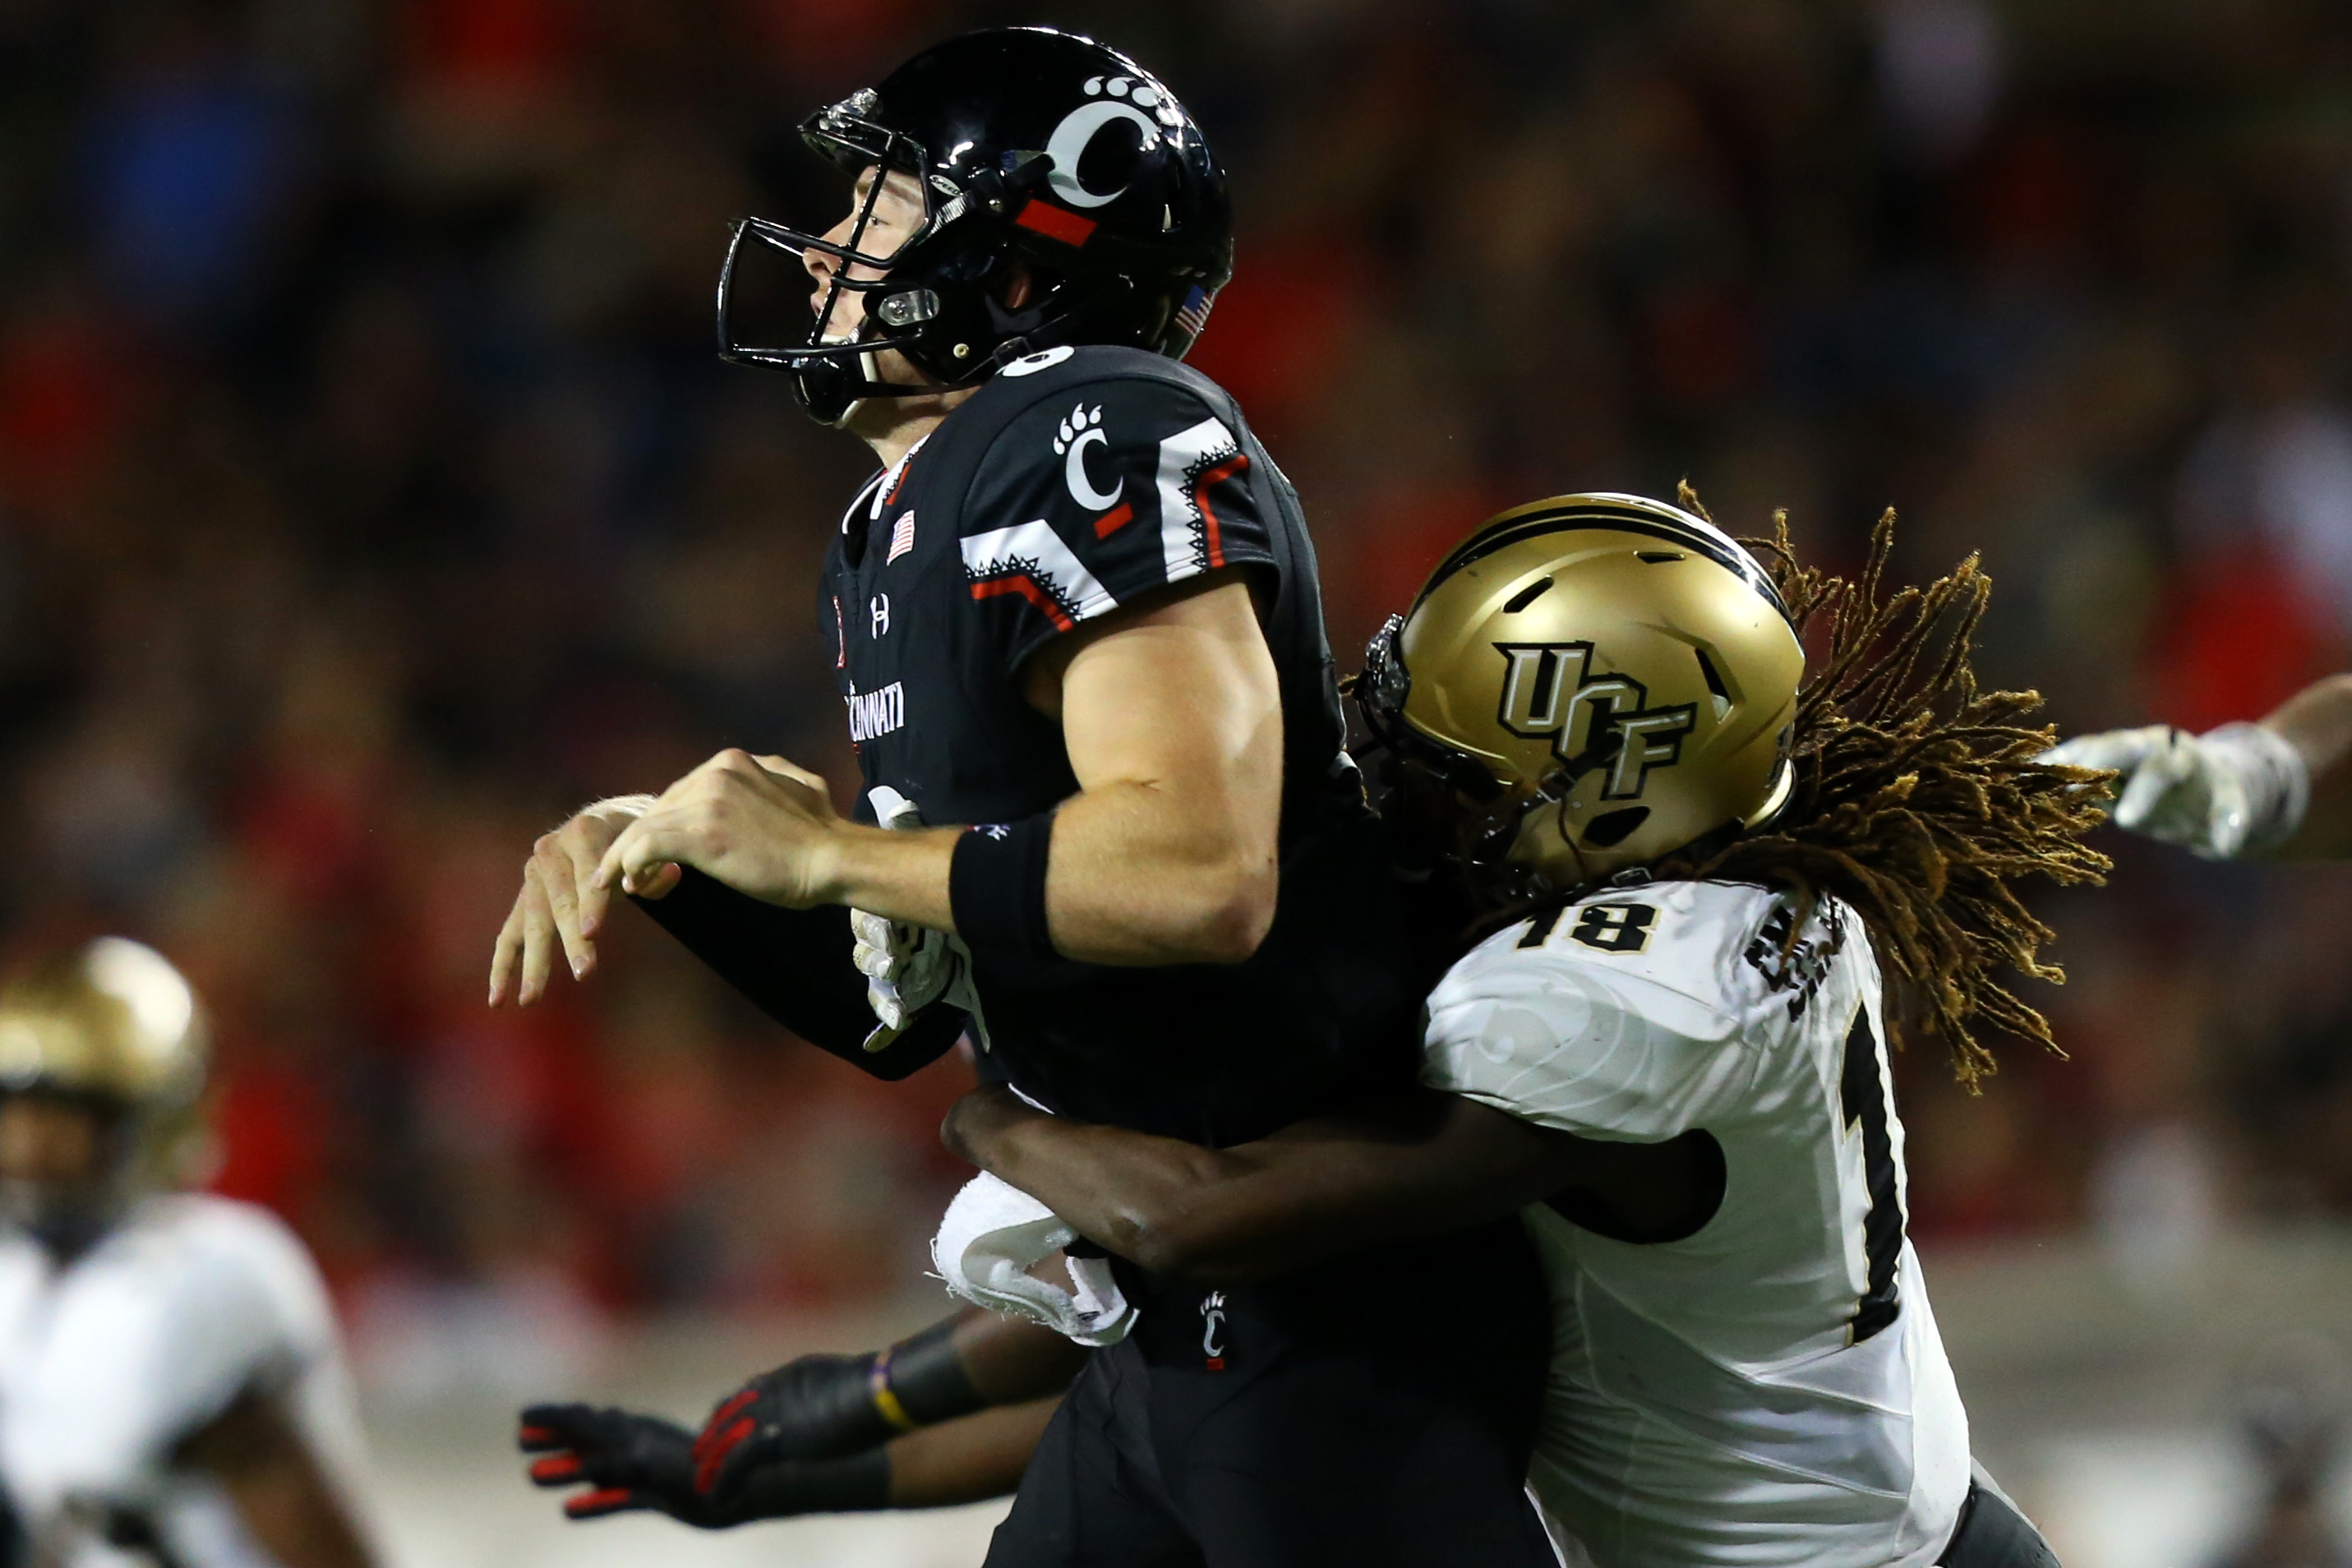 South Florida Bulls vs. UCF Knights Preview and Prediction